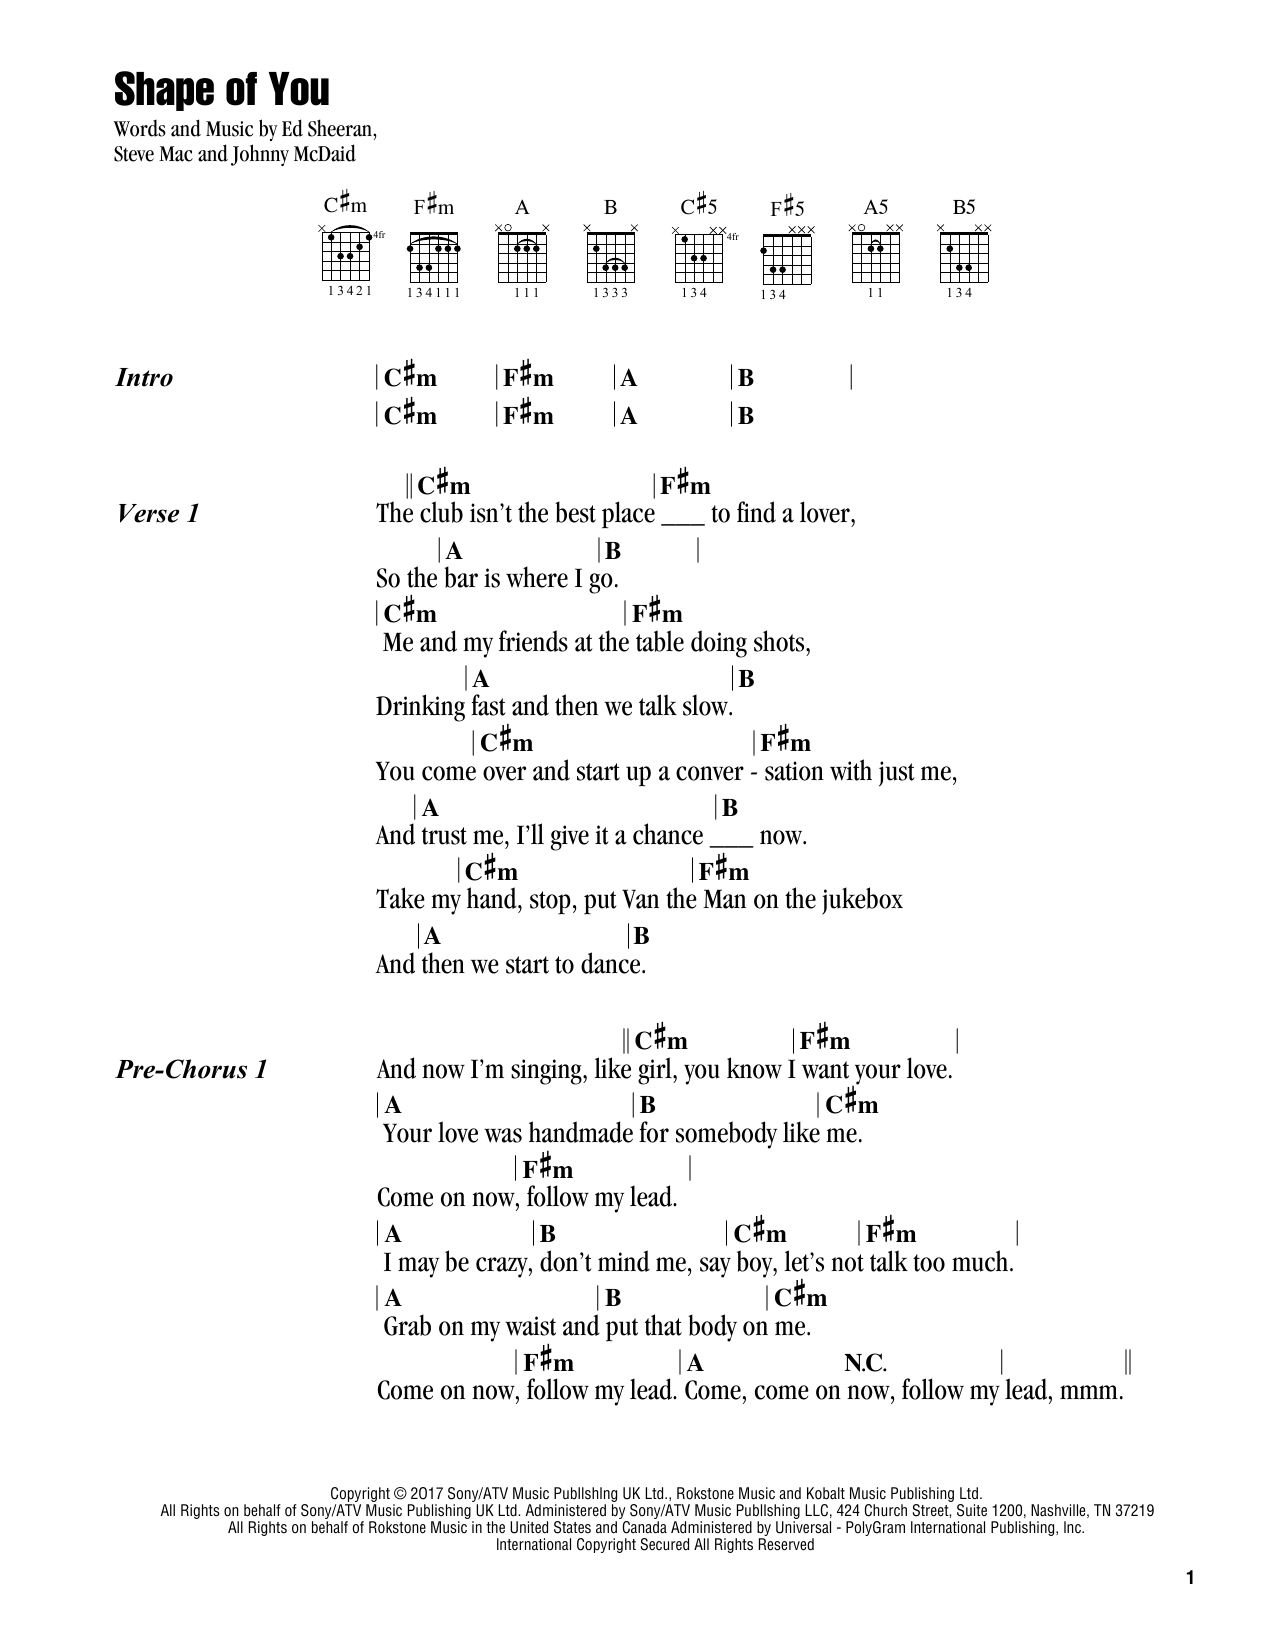 Shape of you sheet music by ed sheeran lyrics chords 178681 ed sheeran shape of you lyrics chords hexwebz Gallery